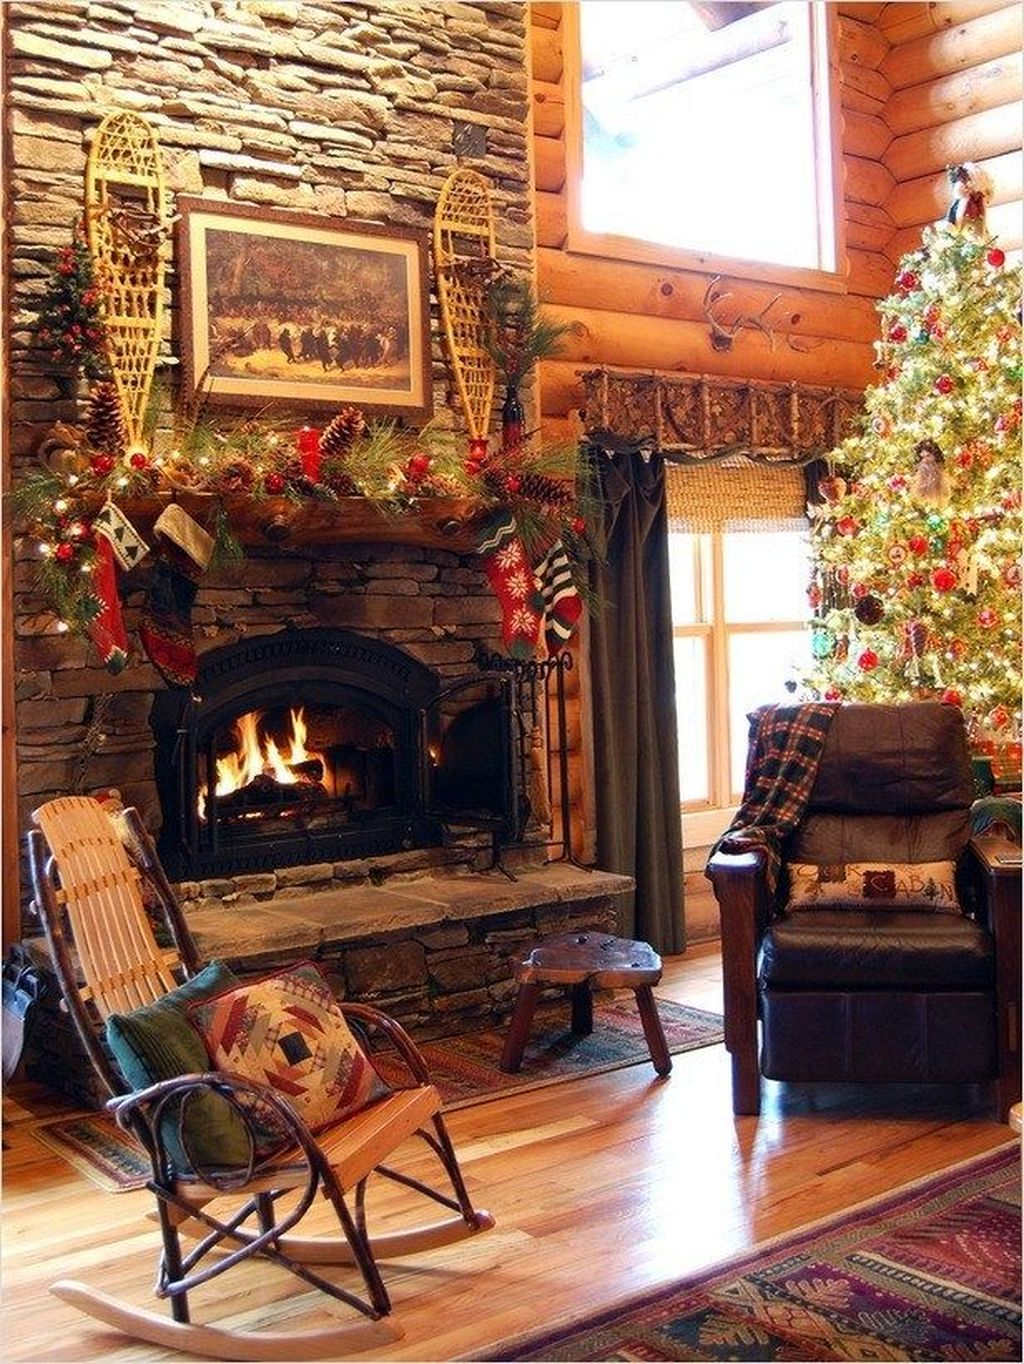 Popular Christmas Fireplace Mantel Decorations That You Like 27